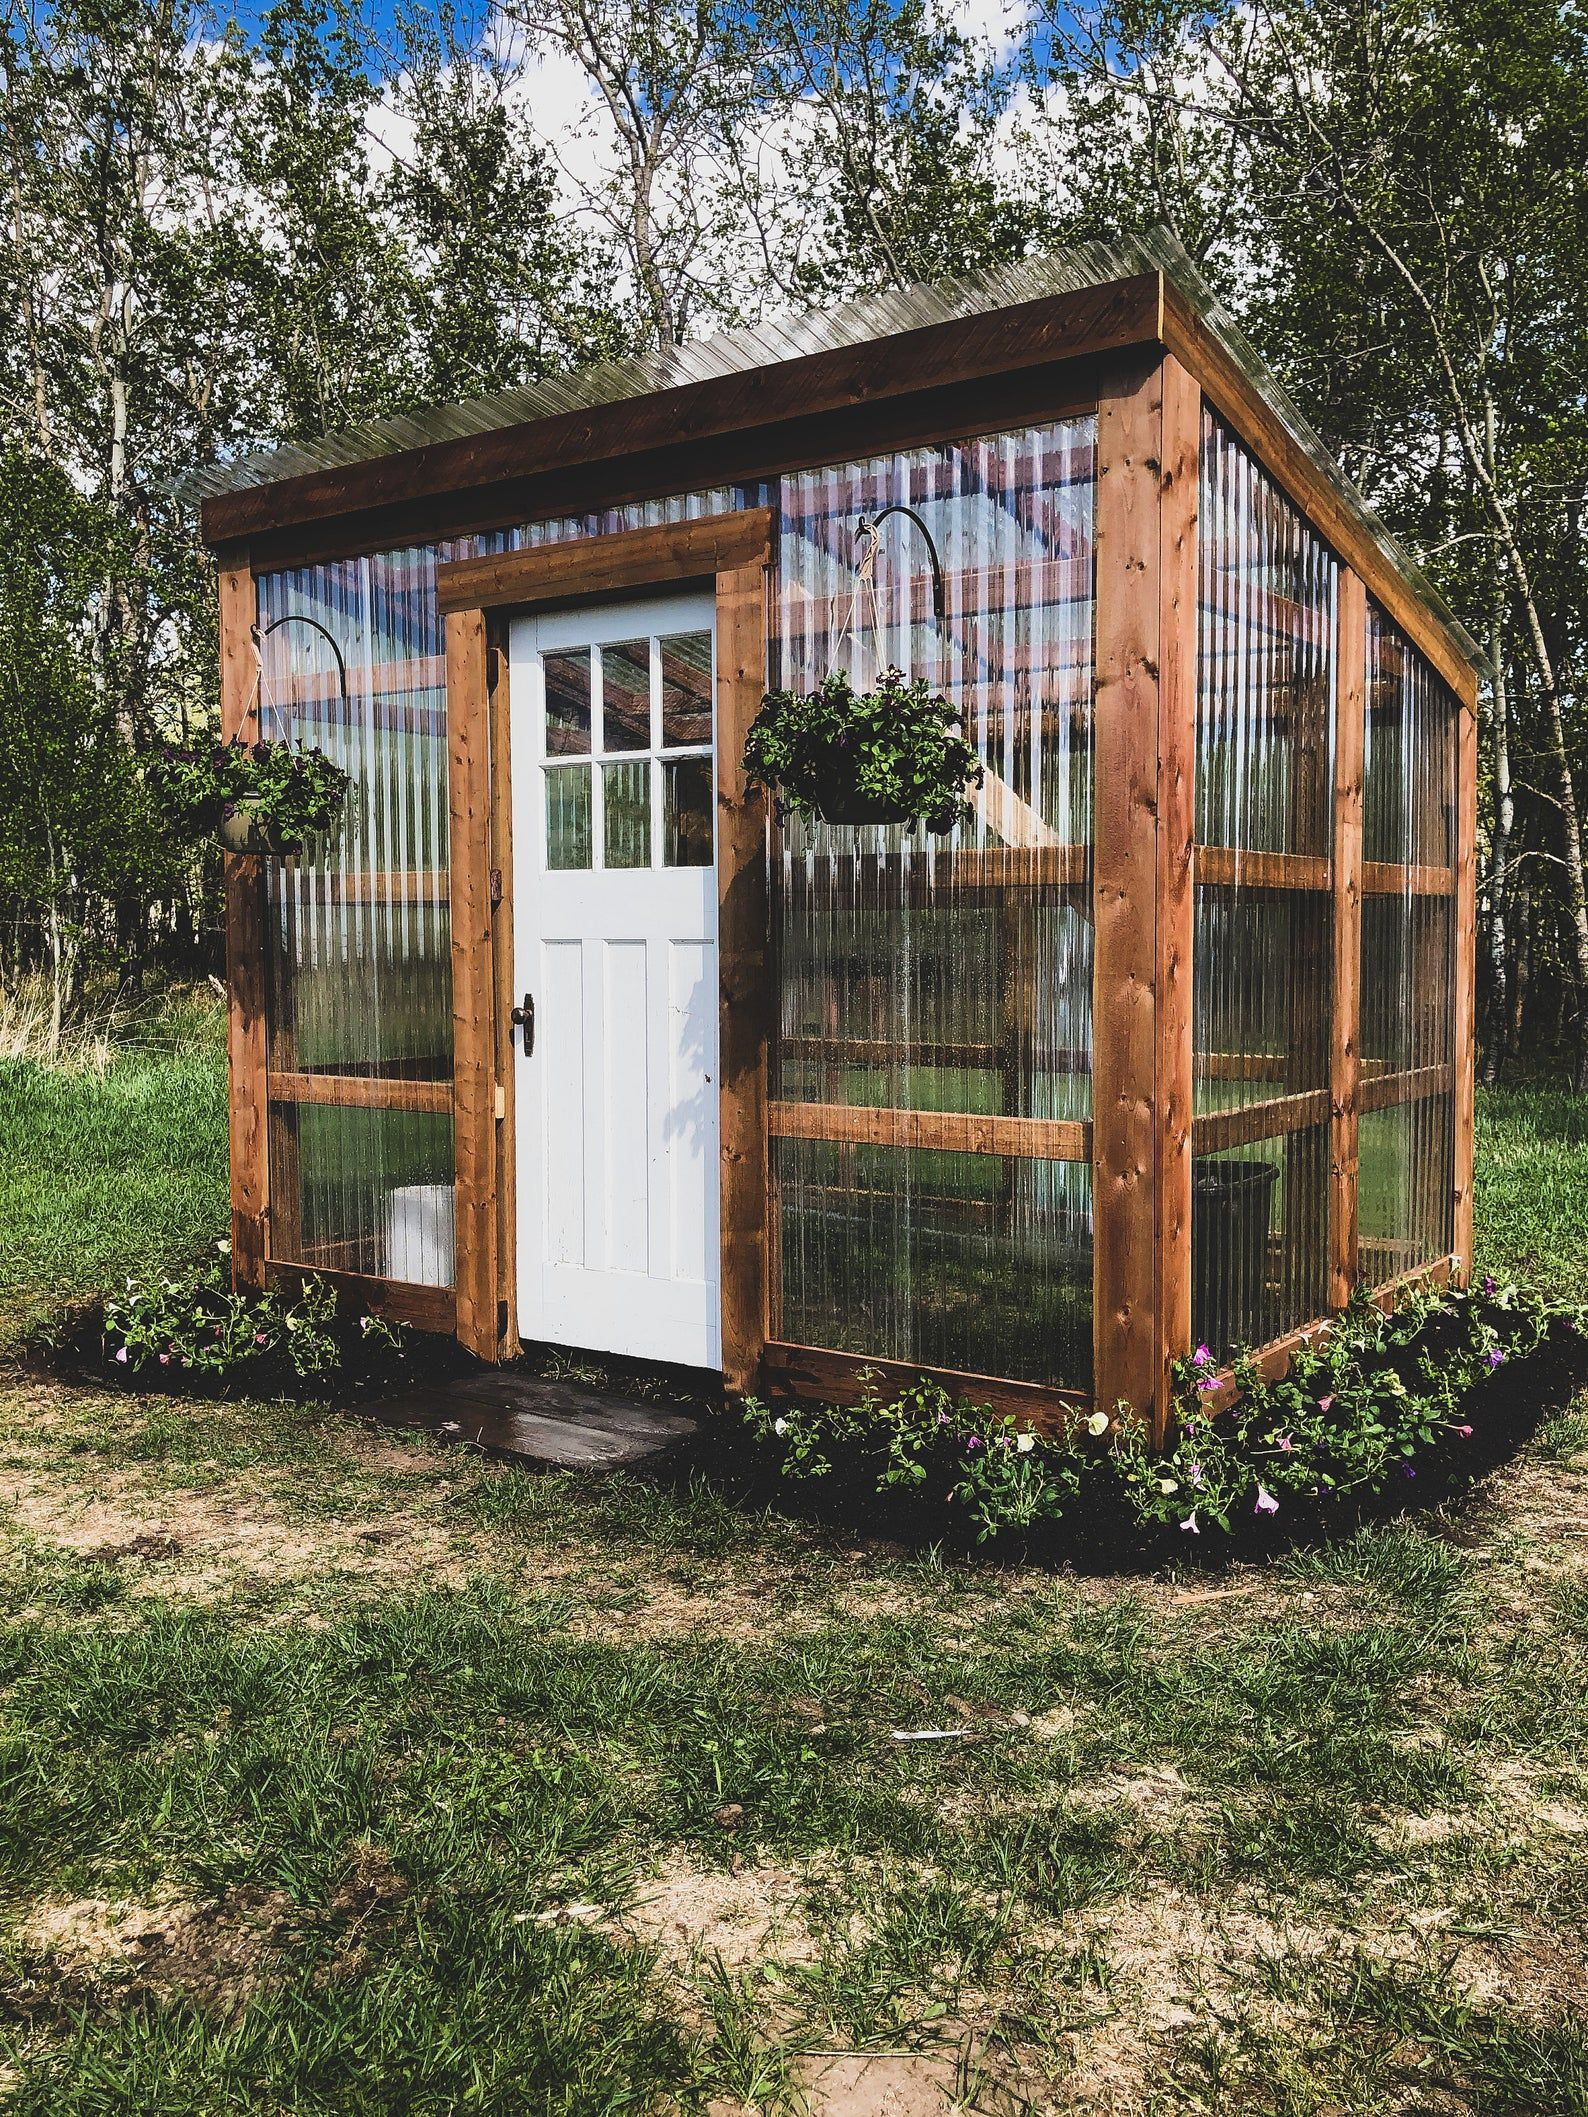 Diy 7x10 Lean To Greenhouse Building Guide Etsy Backyard Greenhouse Lean To Greenhouse Backyard Backyard greenhouse design plans